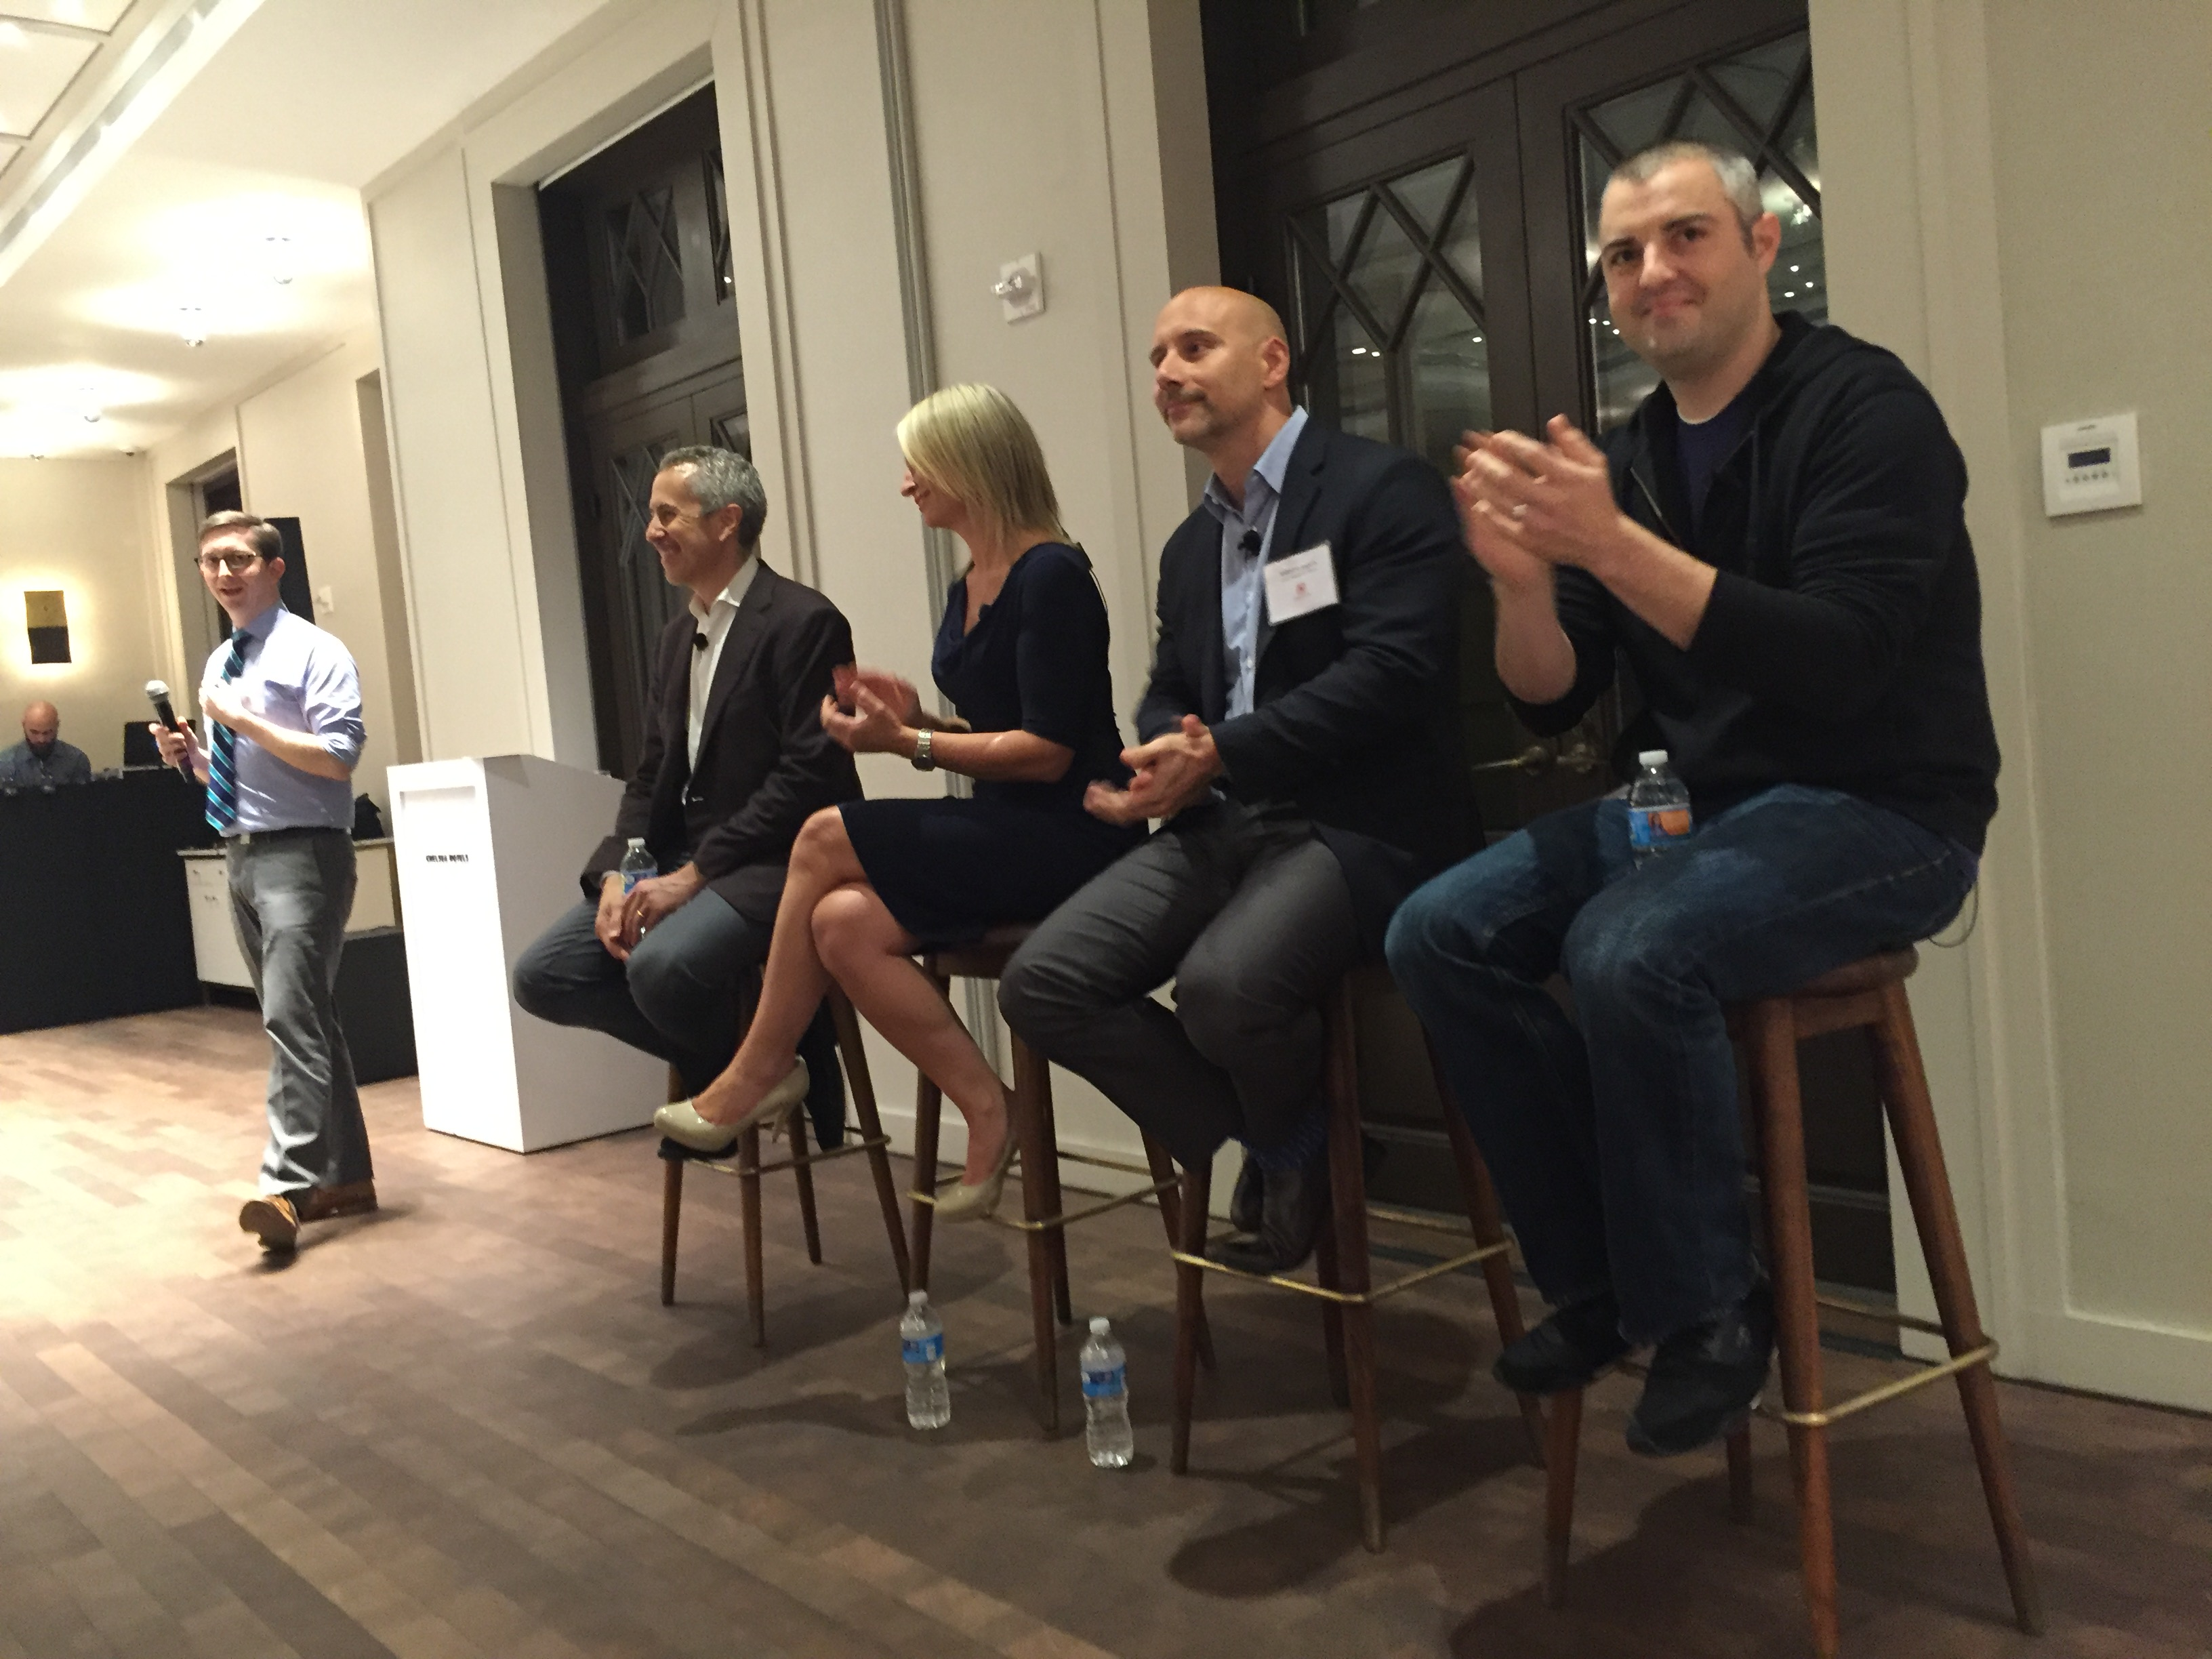 USHG's executive team, including Danny Meyer, Erin Moran, Sabato Sagaria and The Modern's executive chef Abram Bissell, spoke to restaurant guests at a Town Hall on Monday.